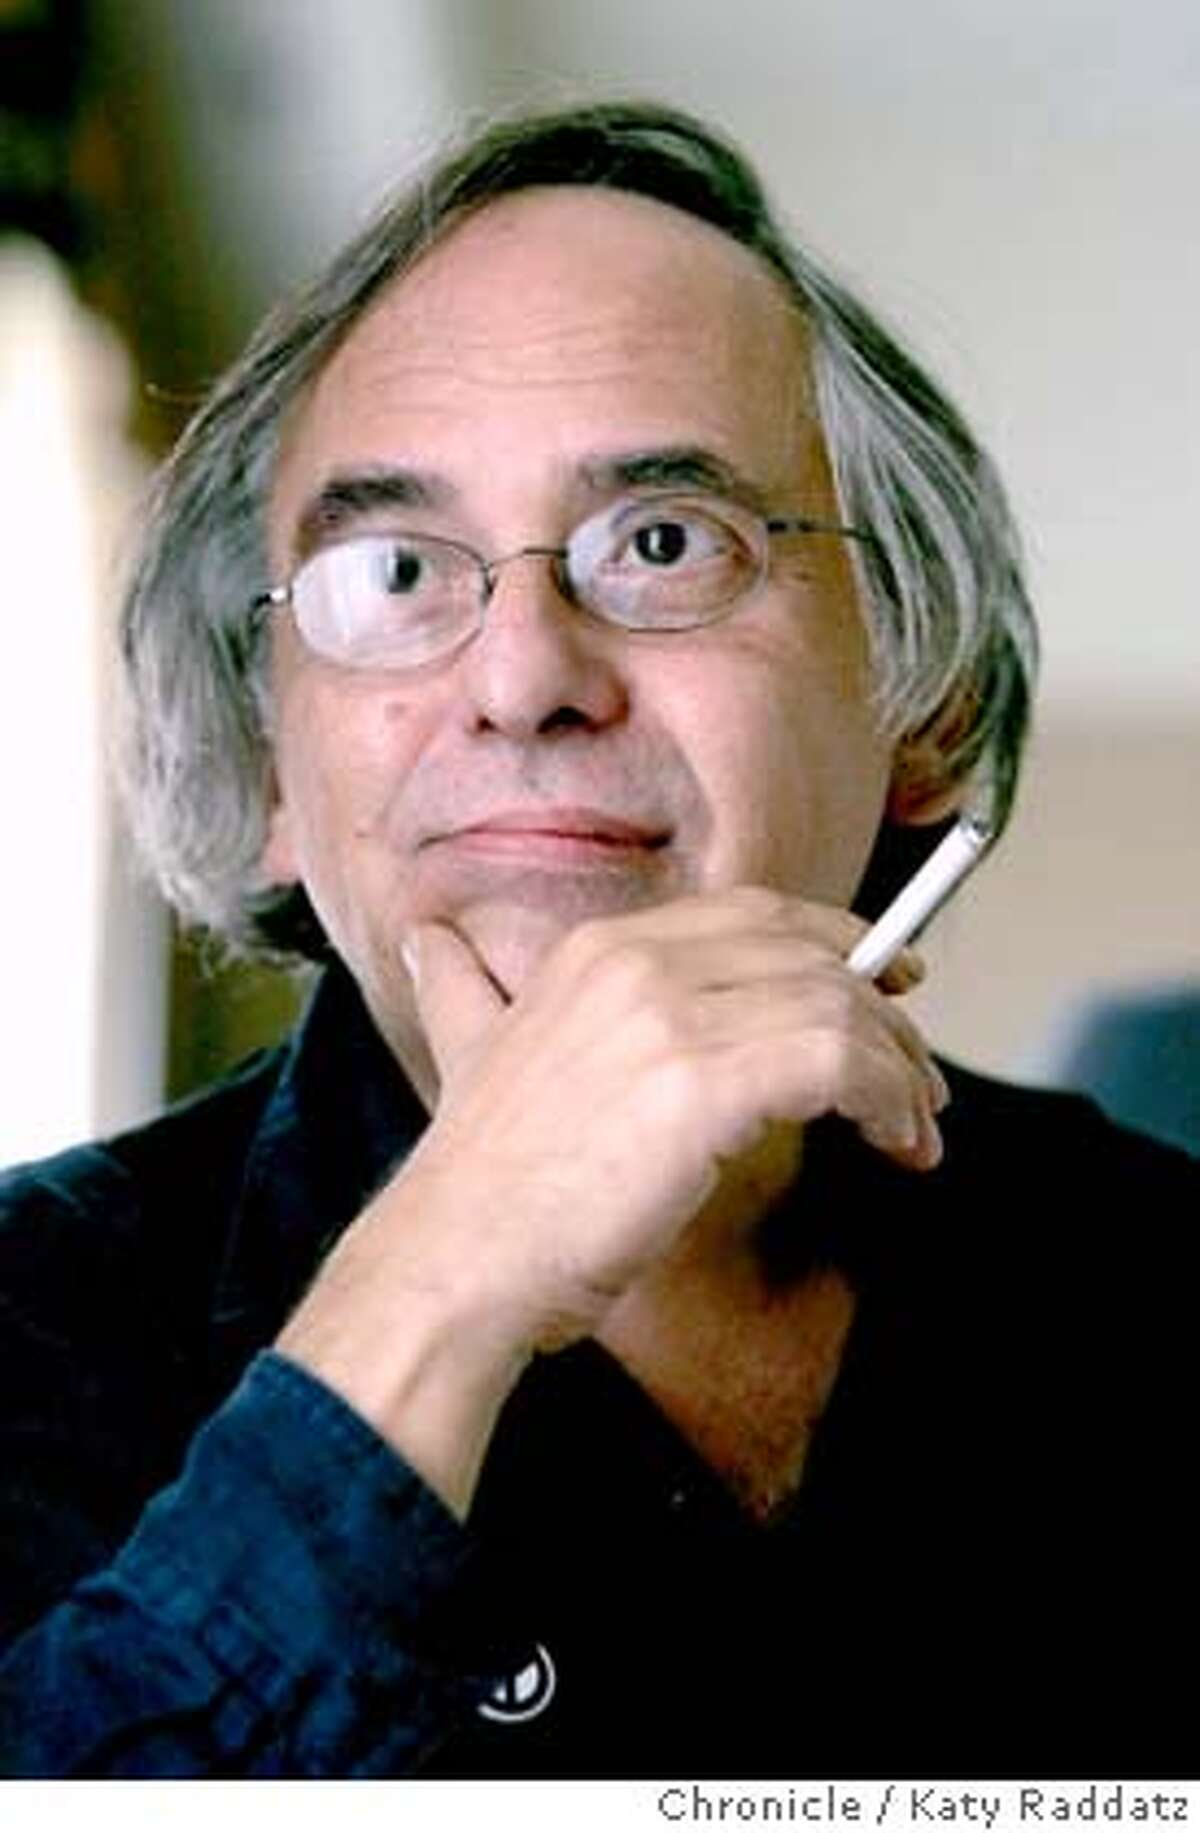 SPEIGELMAN14129_rad.jpg Art Spiegelman, famed comics artist, author of Maus and In the Shadow of No Towers. He's in town for a book tour of In the Shadow of No Towers. Kenneth Baker is the writer for Datebook. Katy Raddatz / The Chronicle Ran on: 10-15-2004 MANDATORY CREDIT FOR PHOTOG AND SF CHRONICLE/ -MAGS OUT